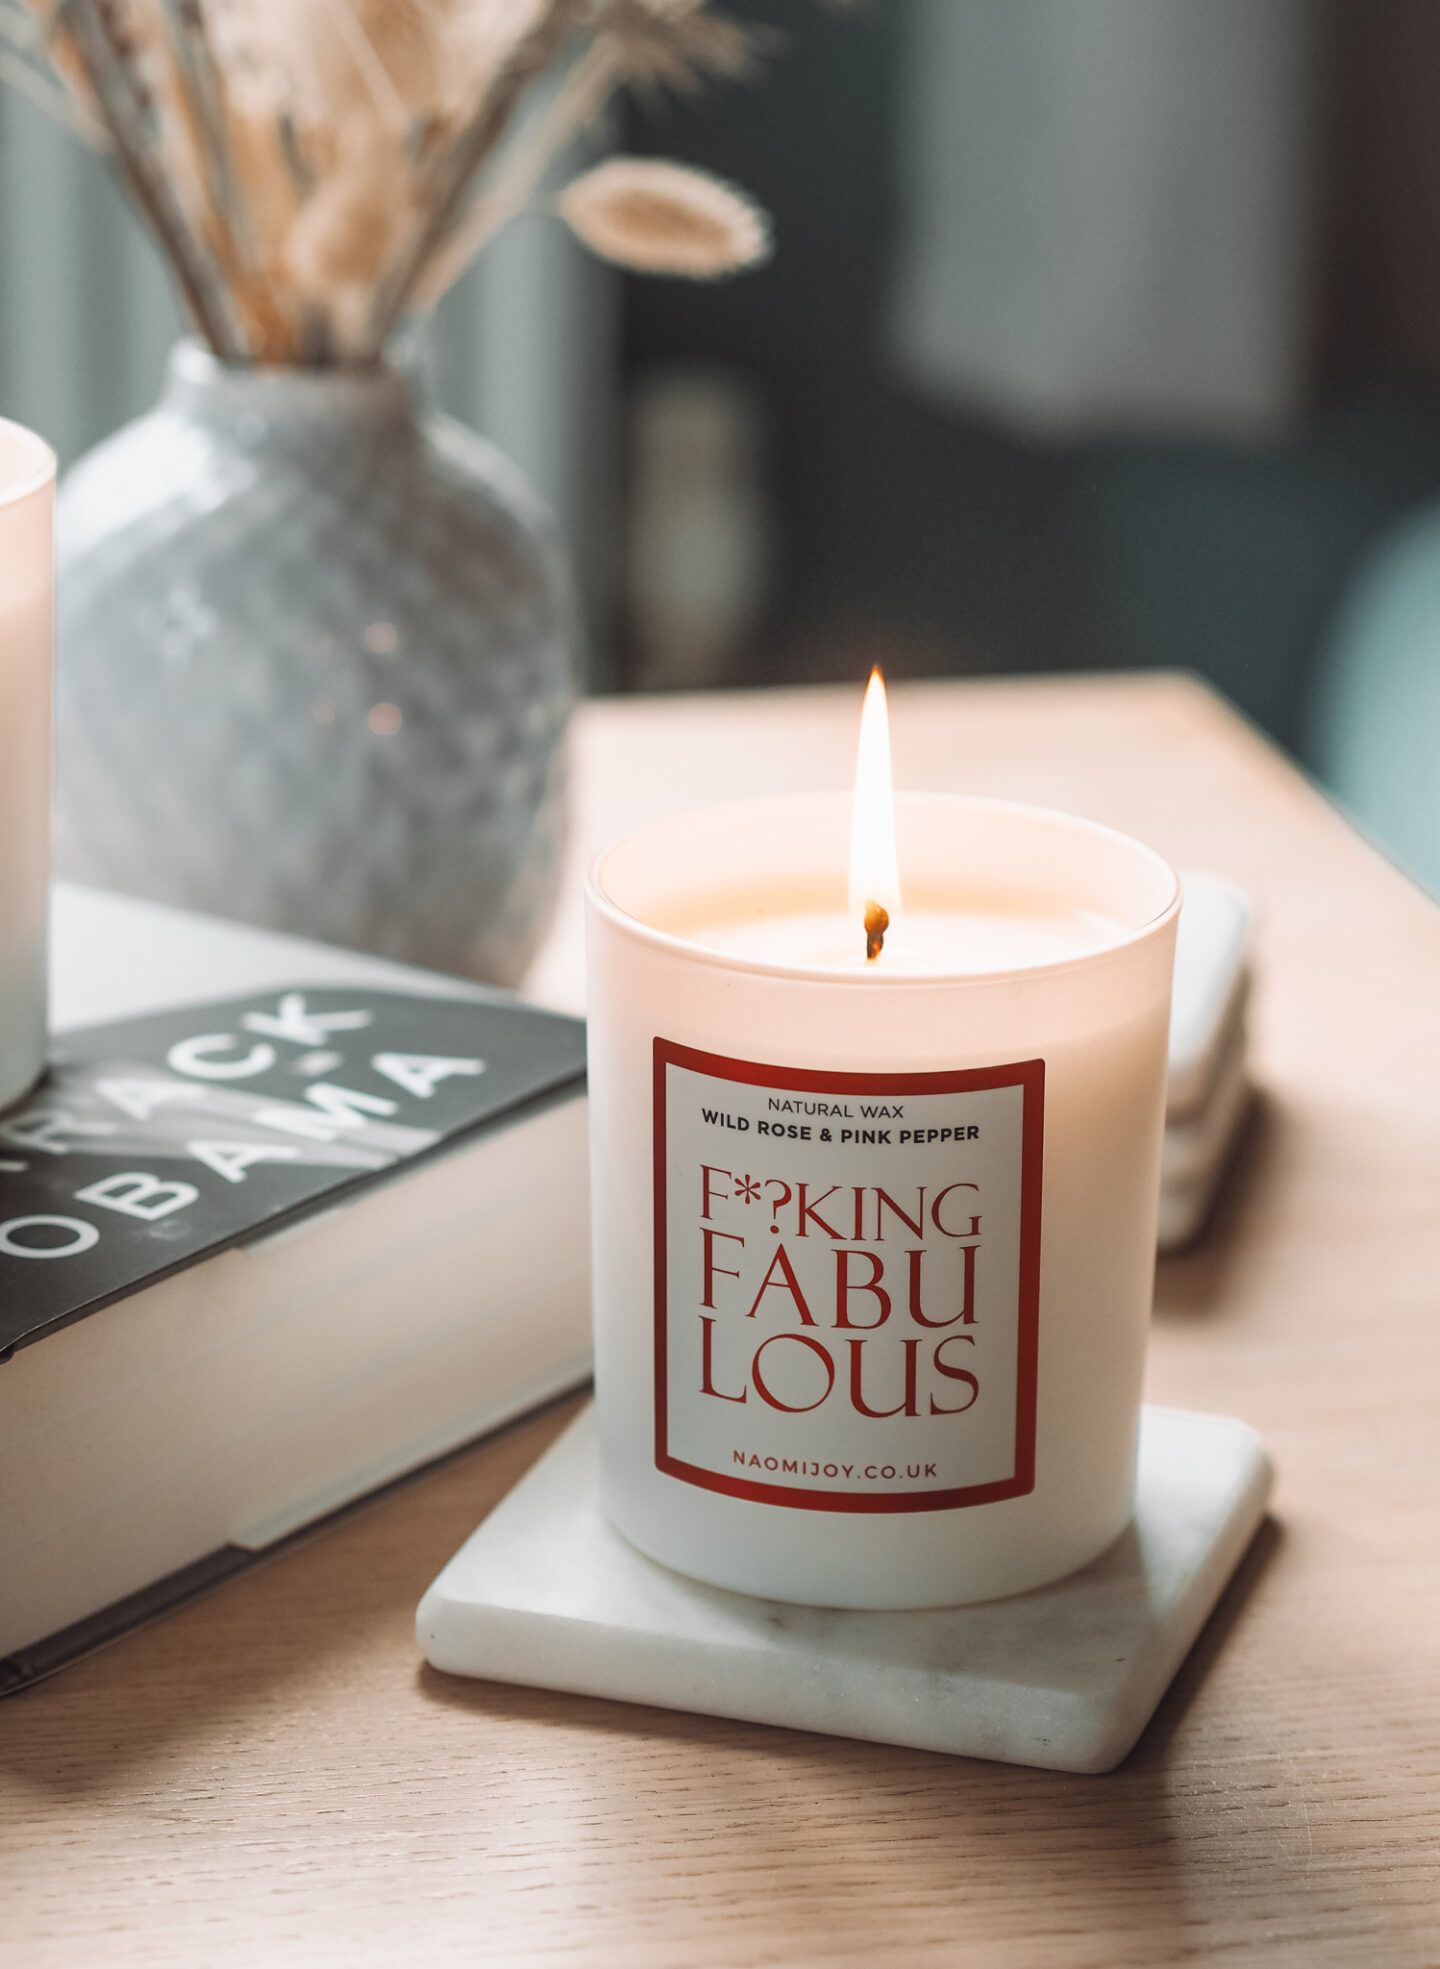 Three Great Independent British Candle Brands To Support